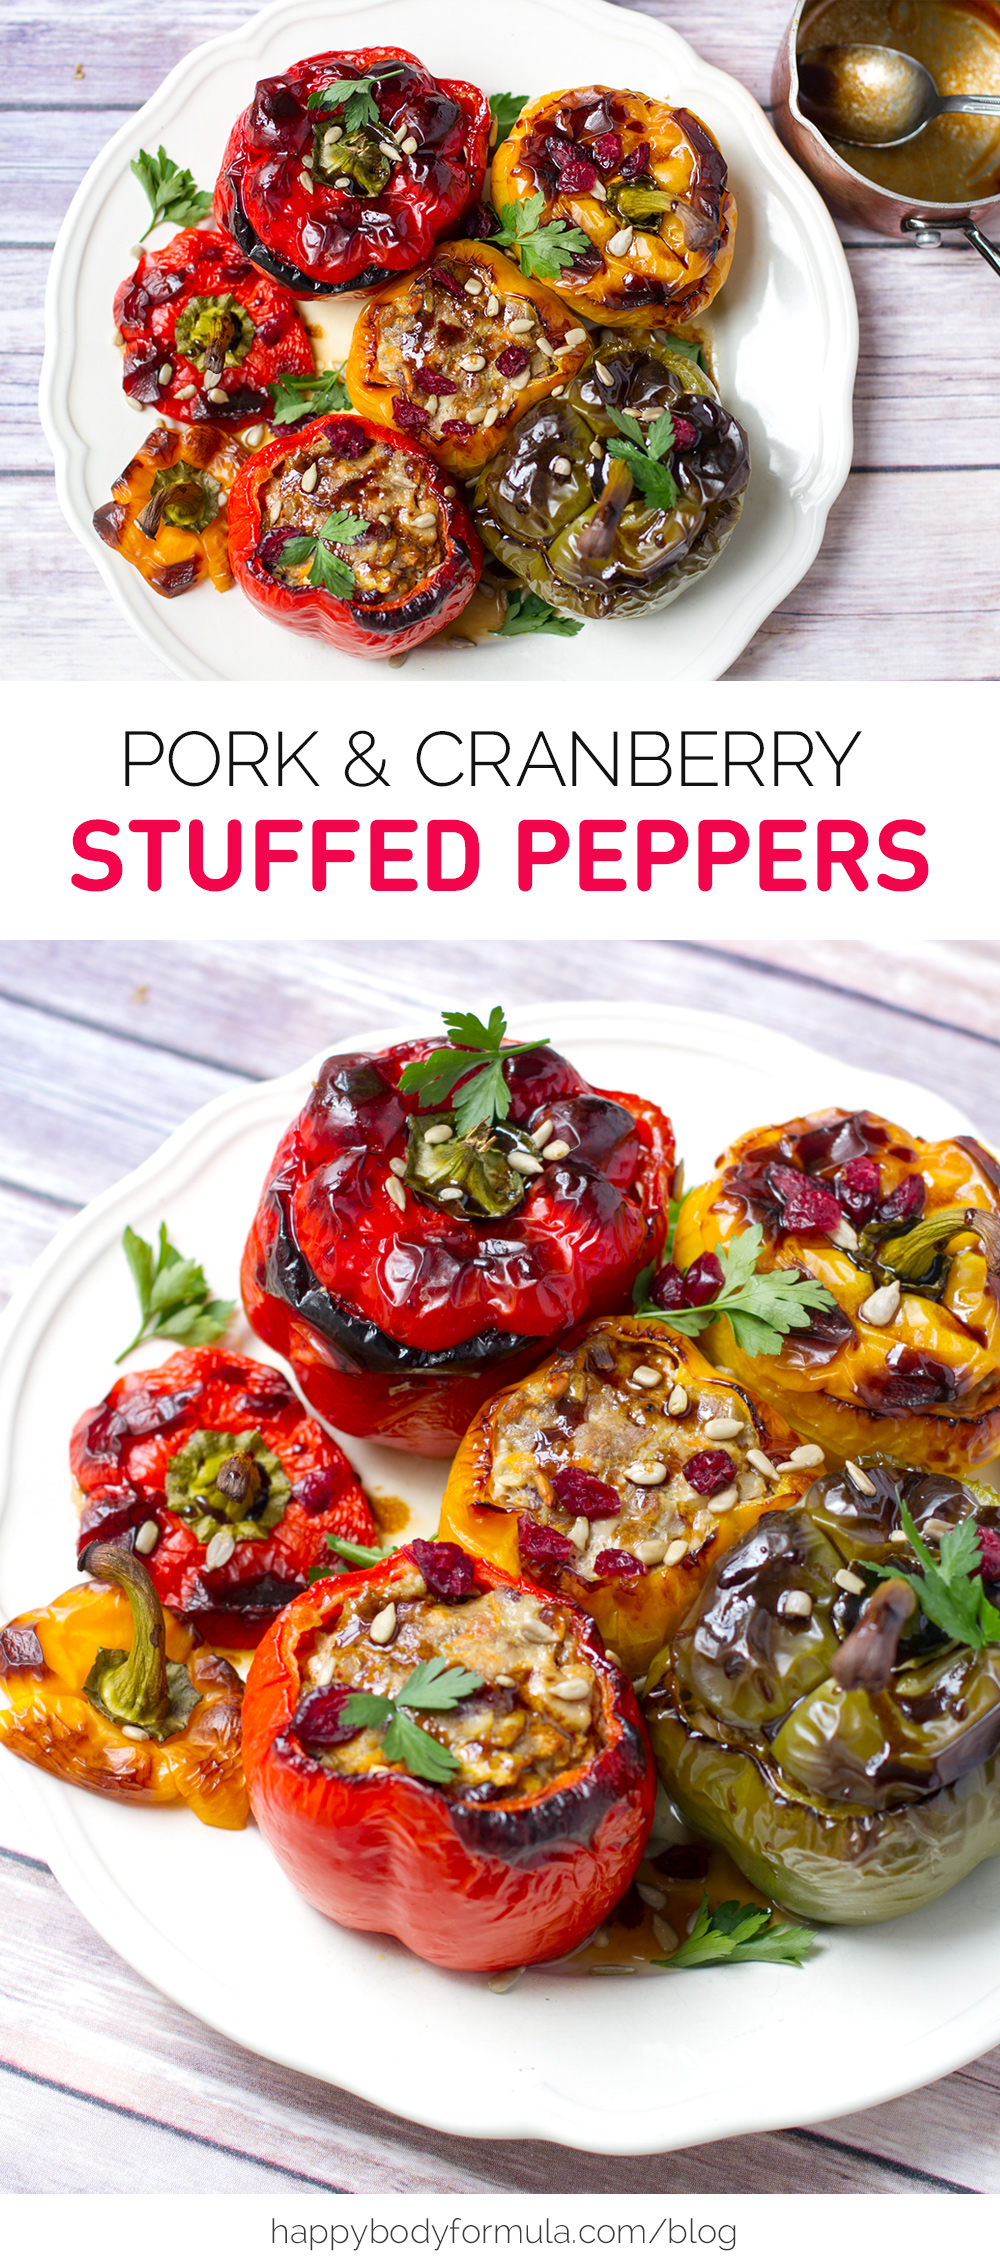 Pork & Cranberry Stuffed Peppers - grain free, paleo friendly, high protein recipe.